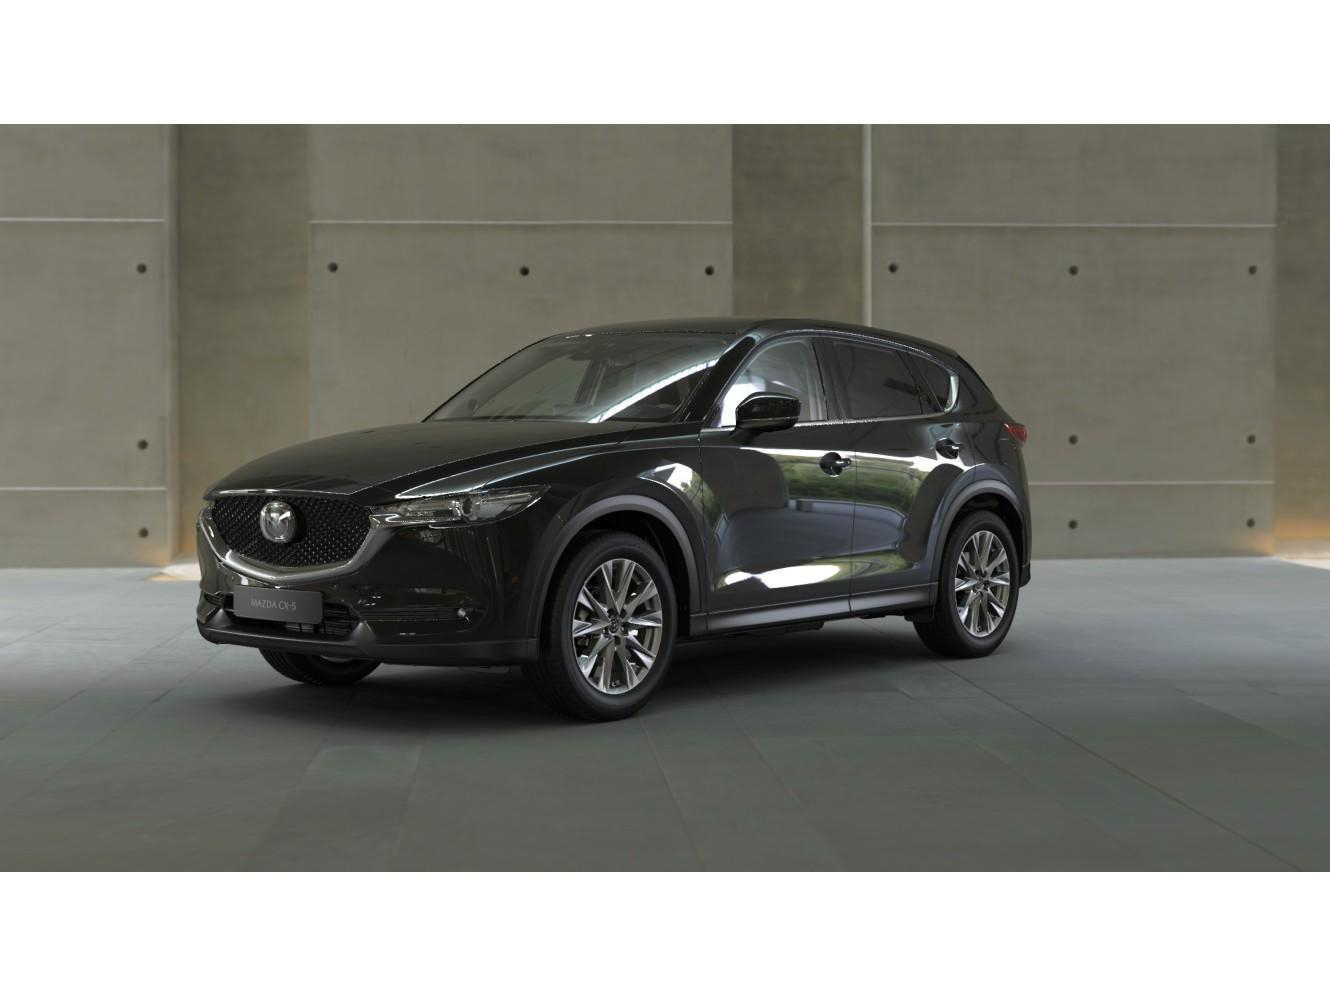 Mazda Cx-5 2.0 skyactiv-g 165 business luxury